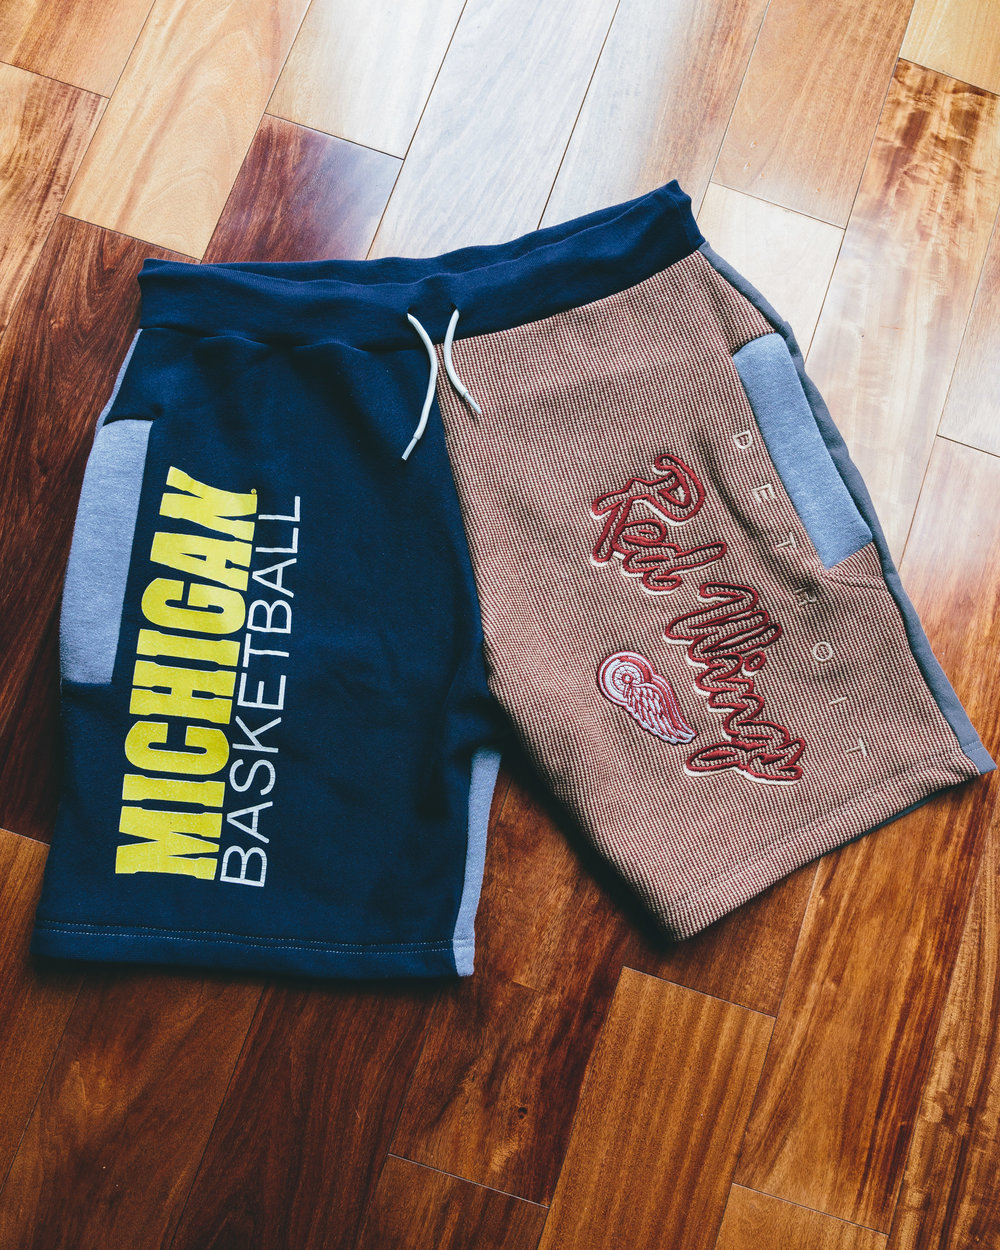 Detroit, Michigan Shorts - Michigan themed shorts from University of Michigan to the Detroit Red wings.